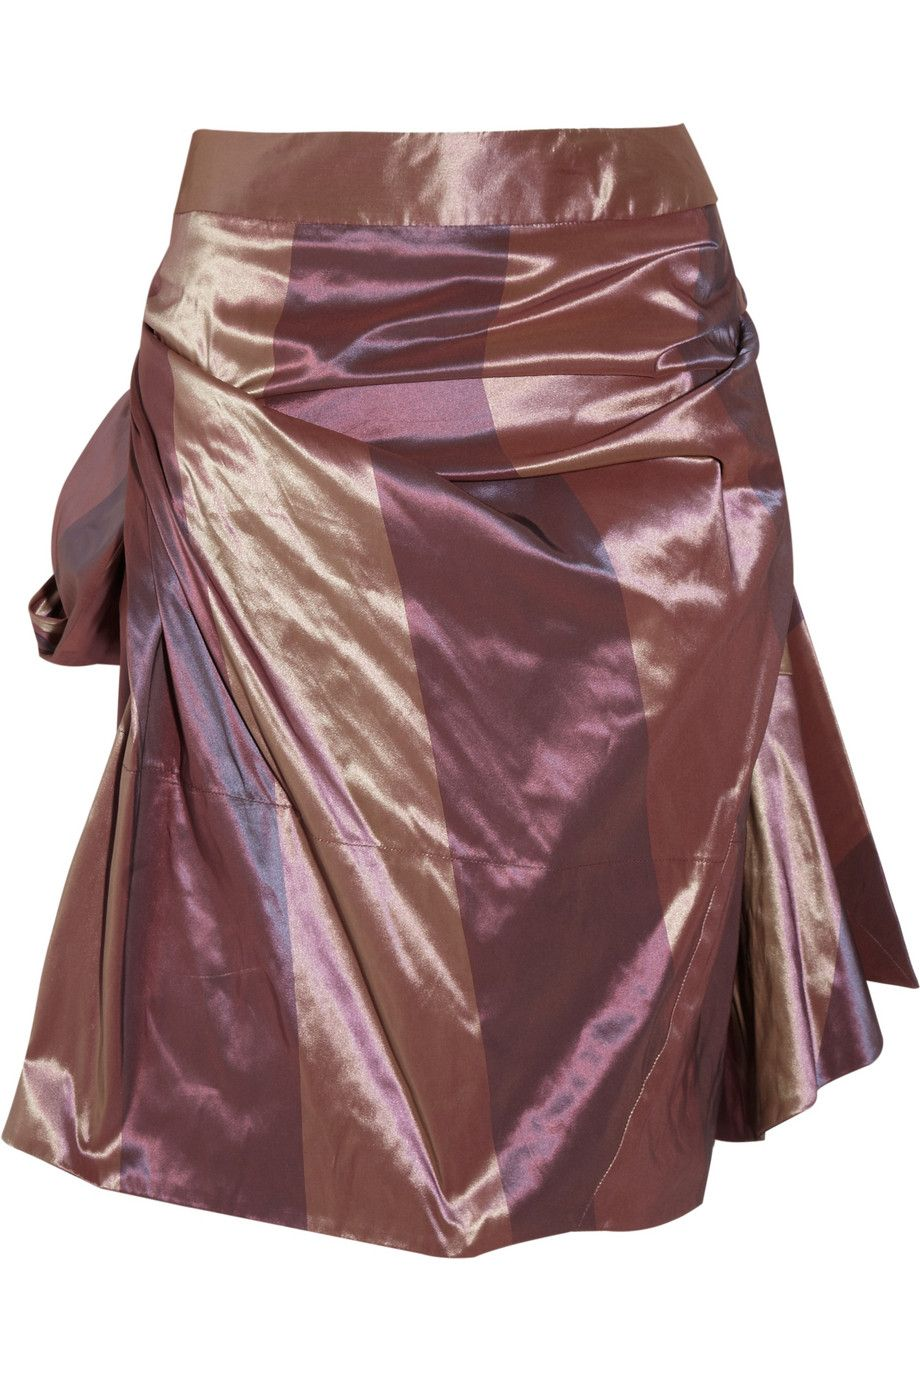 e4034a29df I so want this Vivienne Westwood skirt O.o. Vivienne Westwood Red Label ...